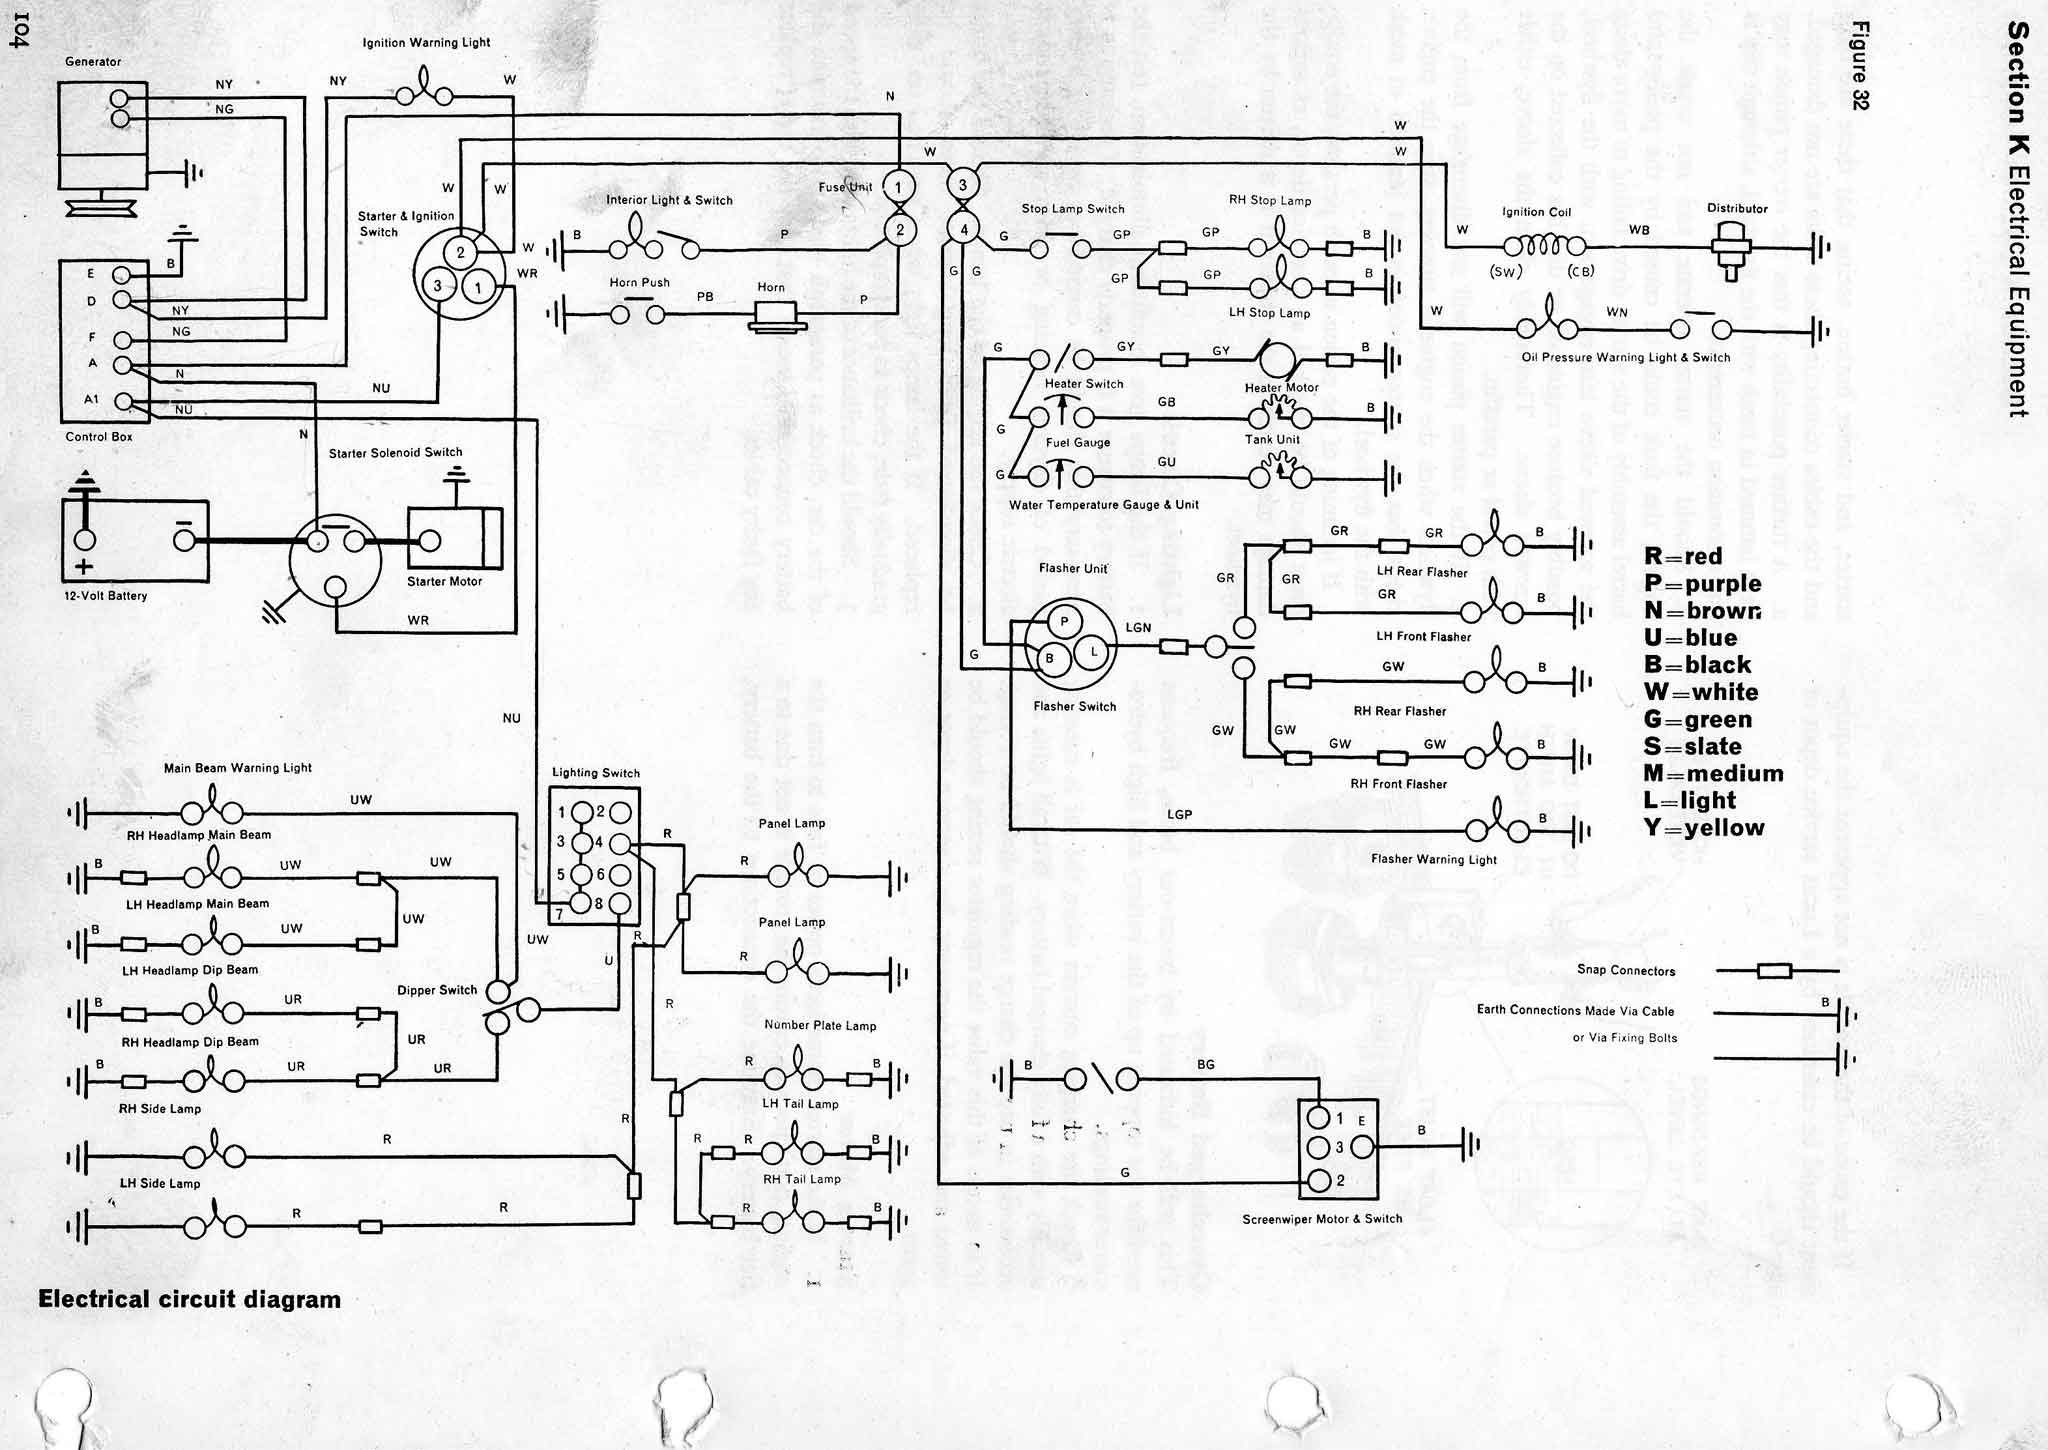 8018 Look Drawing My Led Accent Lights Tell Me Where I M Going Wrong Please likewise Crusader Wiring Diagram likewise Yanmar Tractor Wiring Diagram additionally Sailboat Mast Wiring Diagram further Wiring Diagram For Ranger B Boat. on sailboat wiring schematic